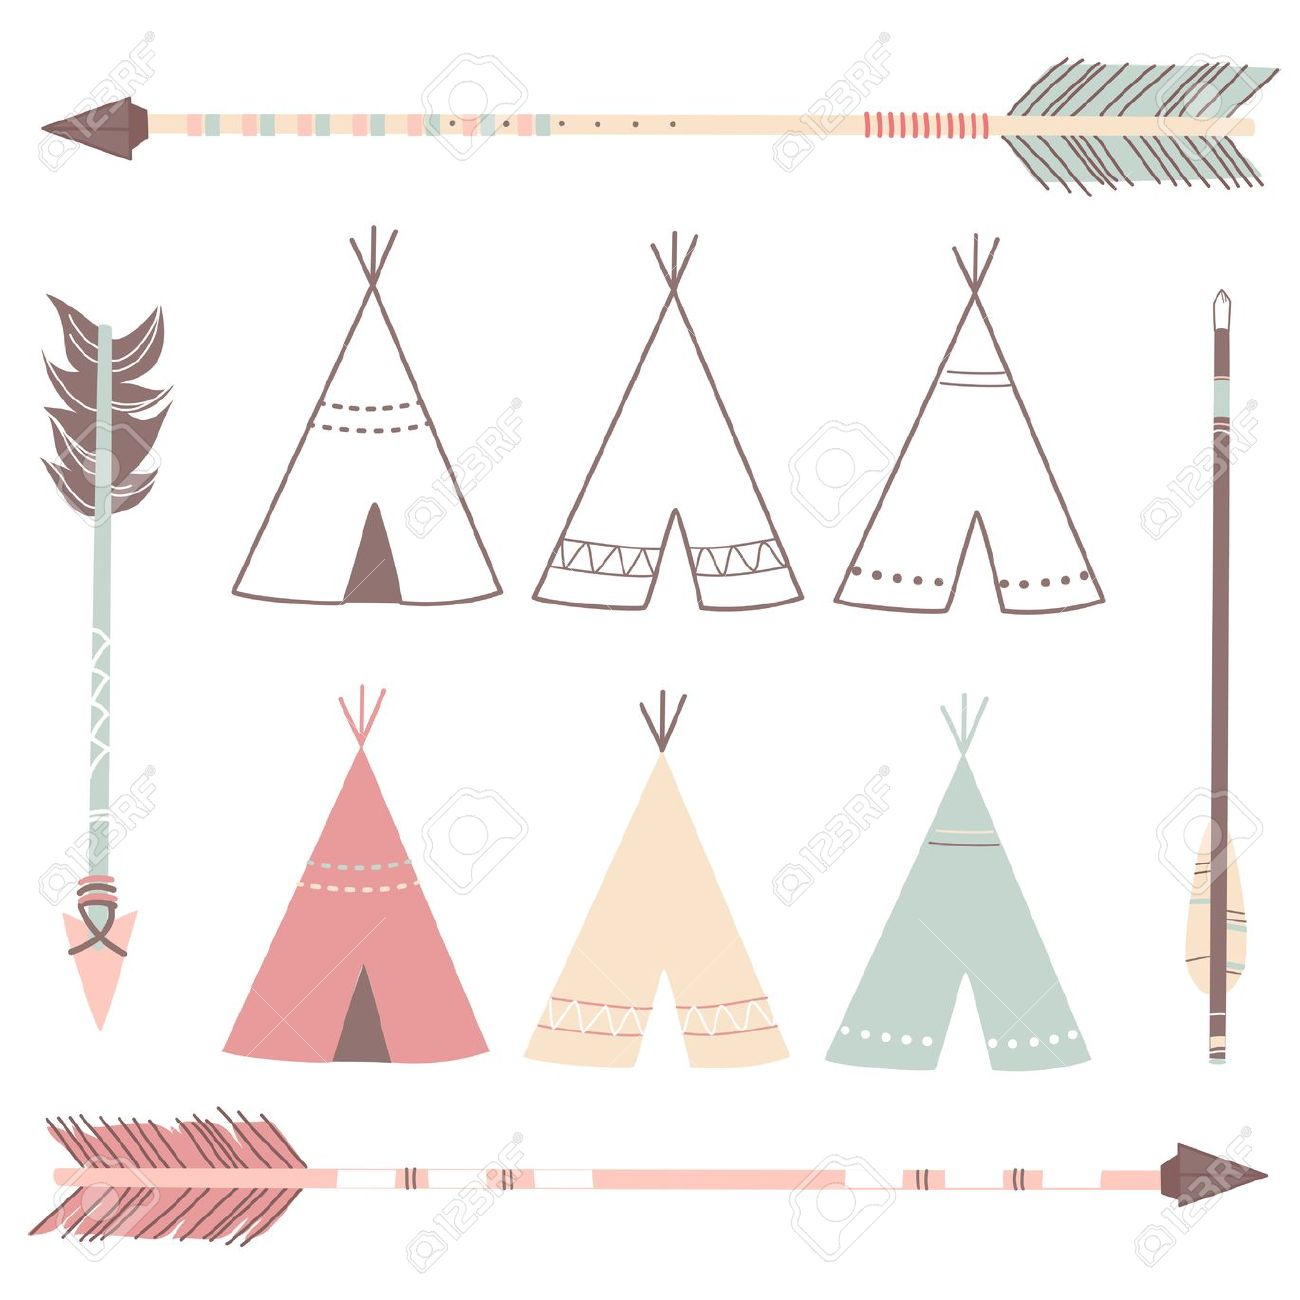 1300x1300 I Kind Of Like The Idea Of A Tiny Teepee Tattoo To Represent